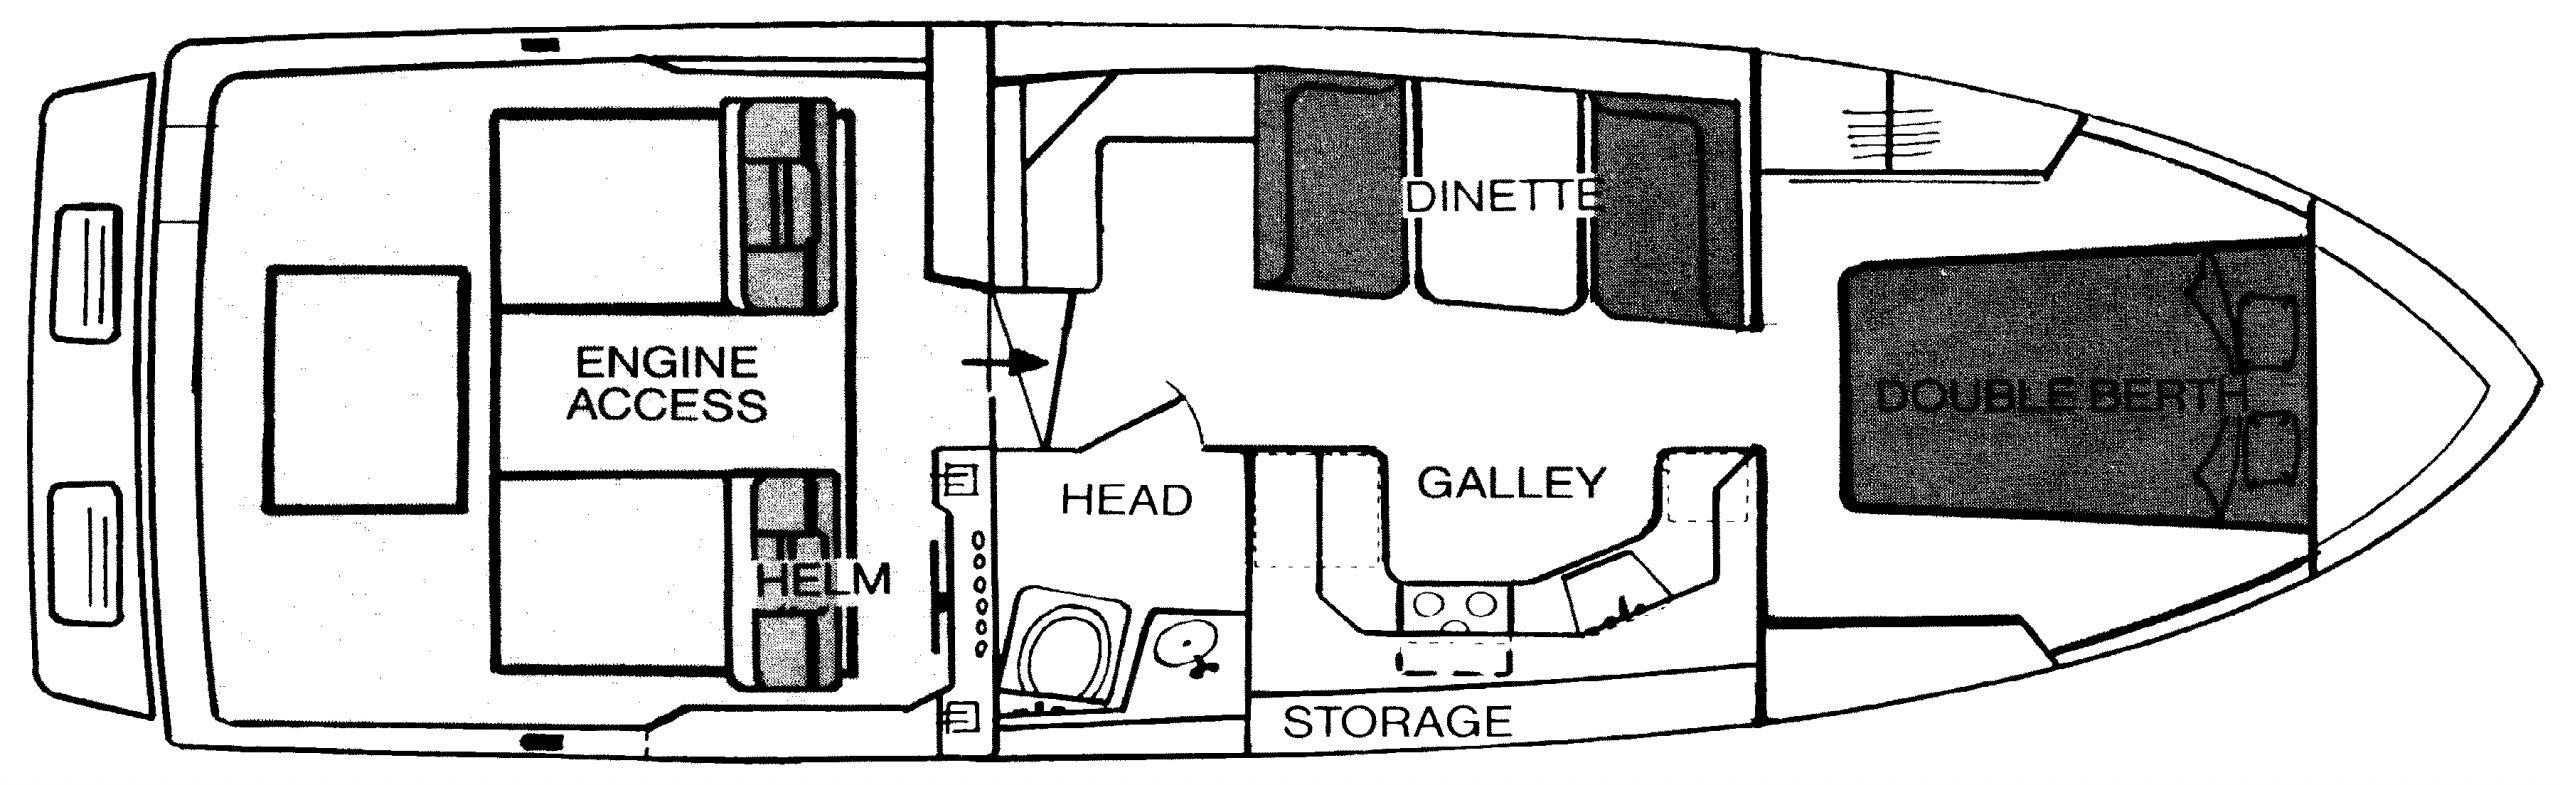 340 Sport Fisherman Floor Plan 2